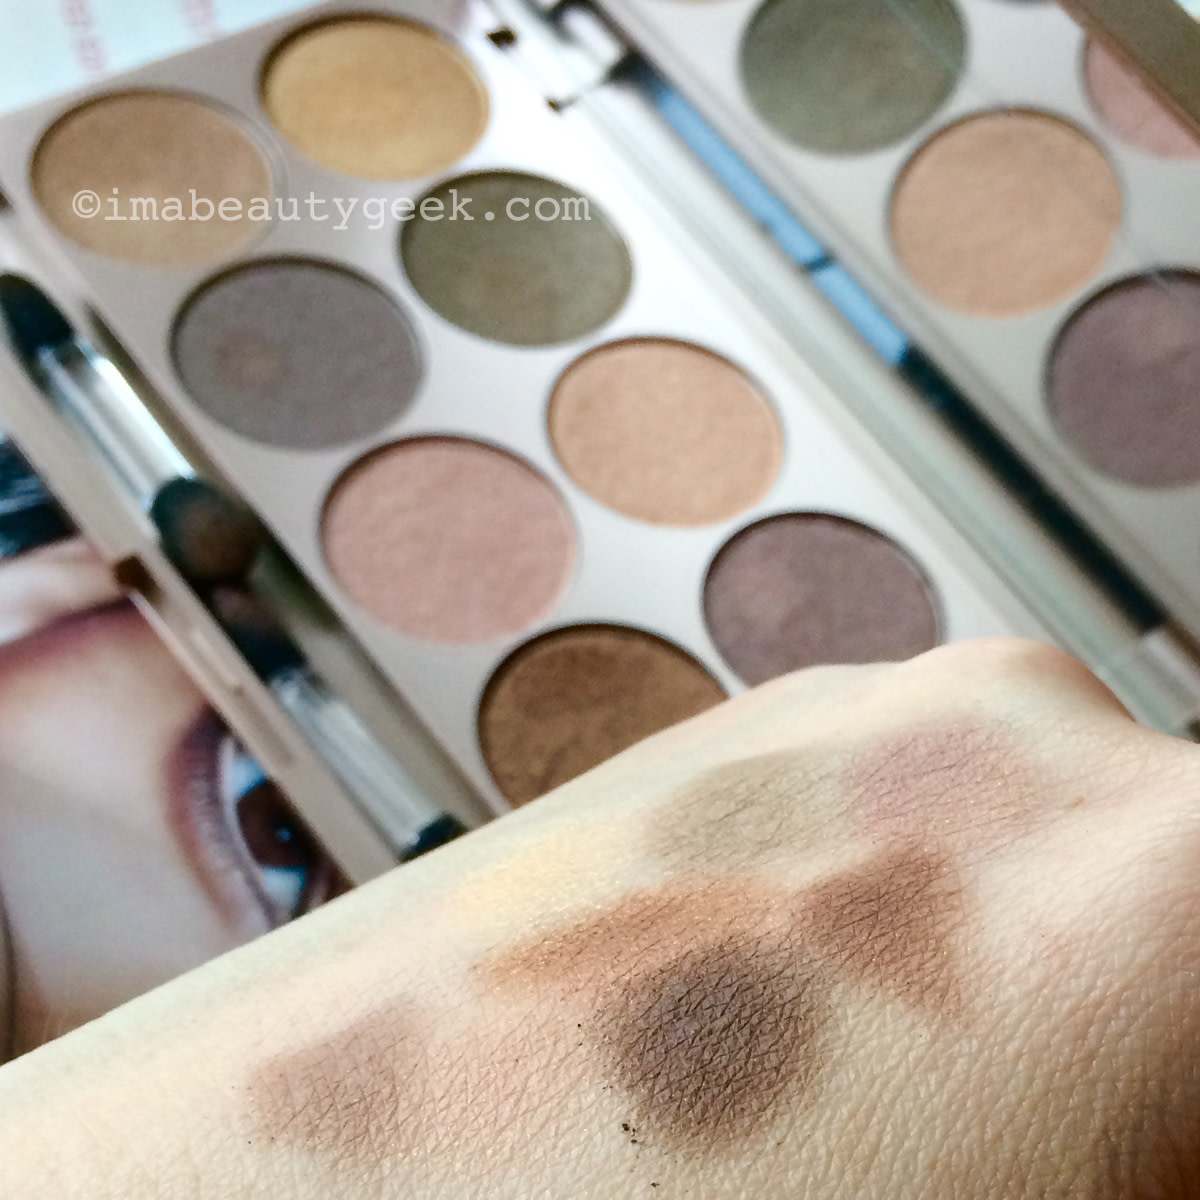 Lise Watier Palette Rivages eyeshadow palette swatches